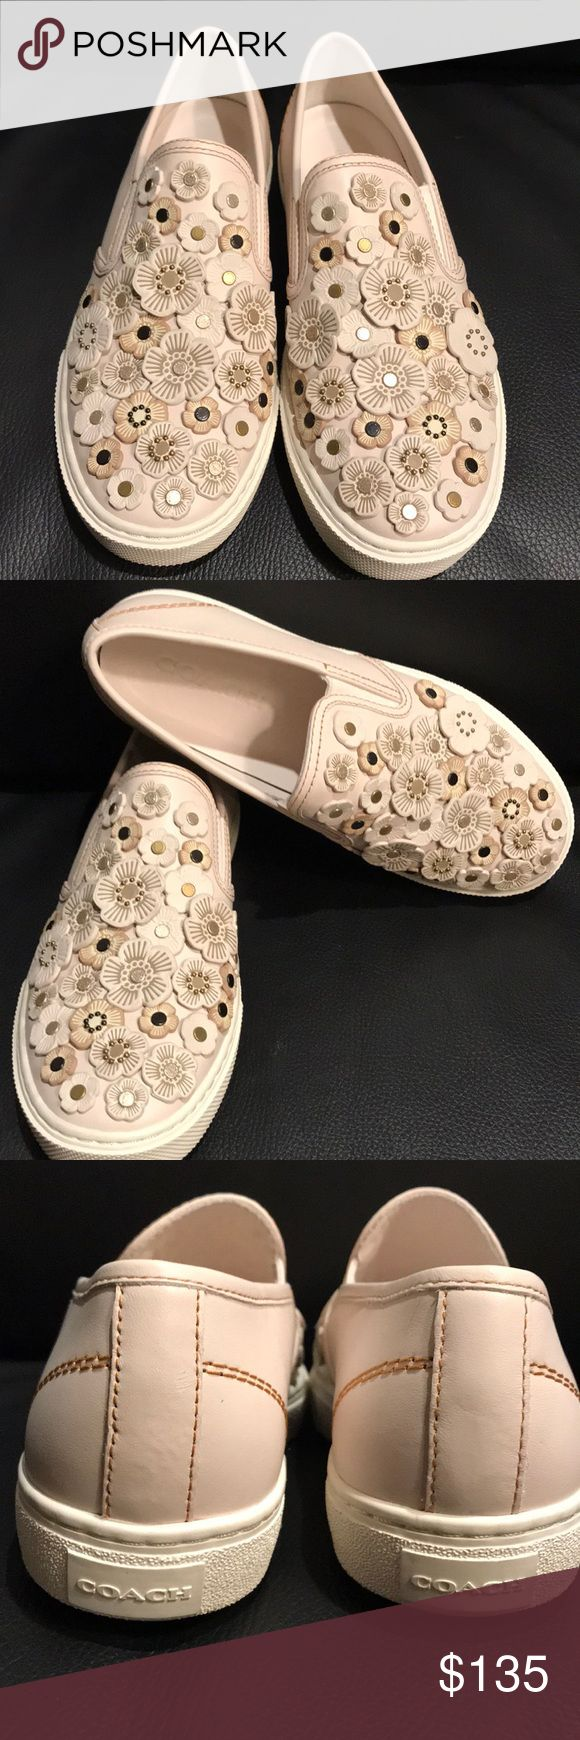 """Coach sneaker NEW with tea rose appliqué Beautiful and fun cream slip on Coach sneakers with 3D tea rose appliqué, pearly cabochons and glittery studs. Leather upper and leather lining and footbed, rubber sole. 1"""" platform. Coach Shoes Flats & Loafers"""